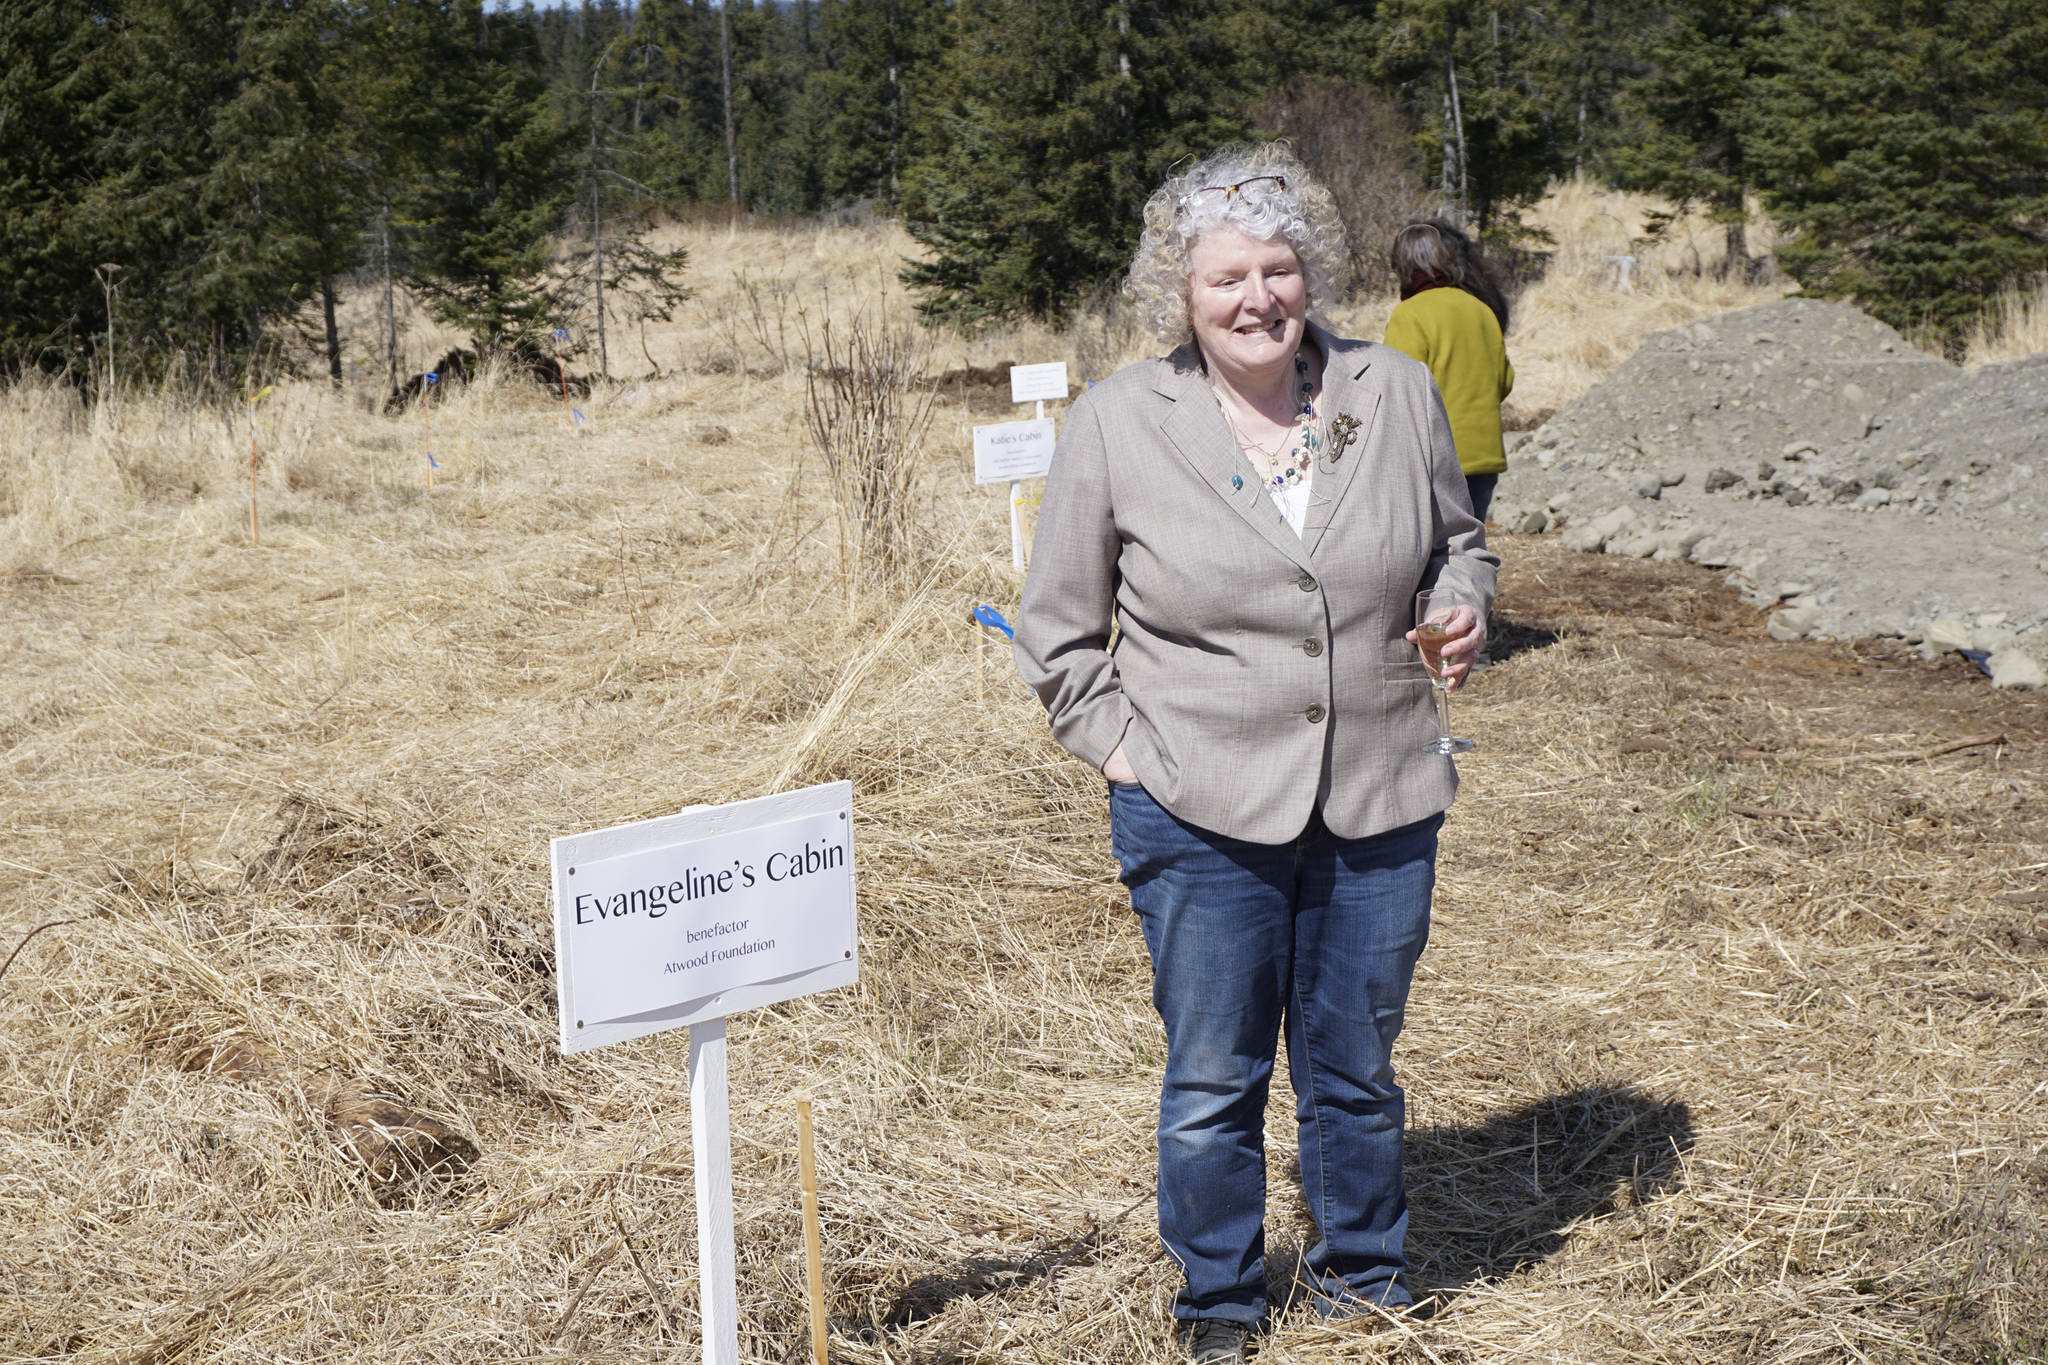 Homer writer and Storyknife Writers Retreat founder Dana Stabenow stands near the site of a cabin at groundbreaking ceremonies last Saturday, May 4, 2019, at the retreat property in Homer, Alaska. Construction started this month on the main house and cabins that will in a year house visiting women writers. (Photo by Michael Armstrong/Homer News)